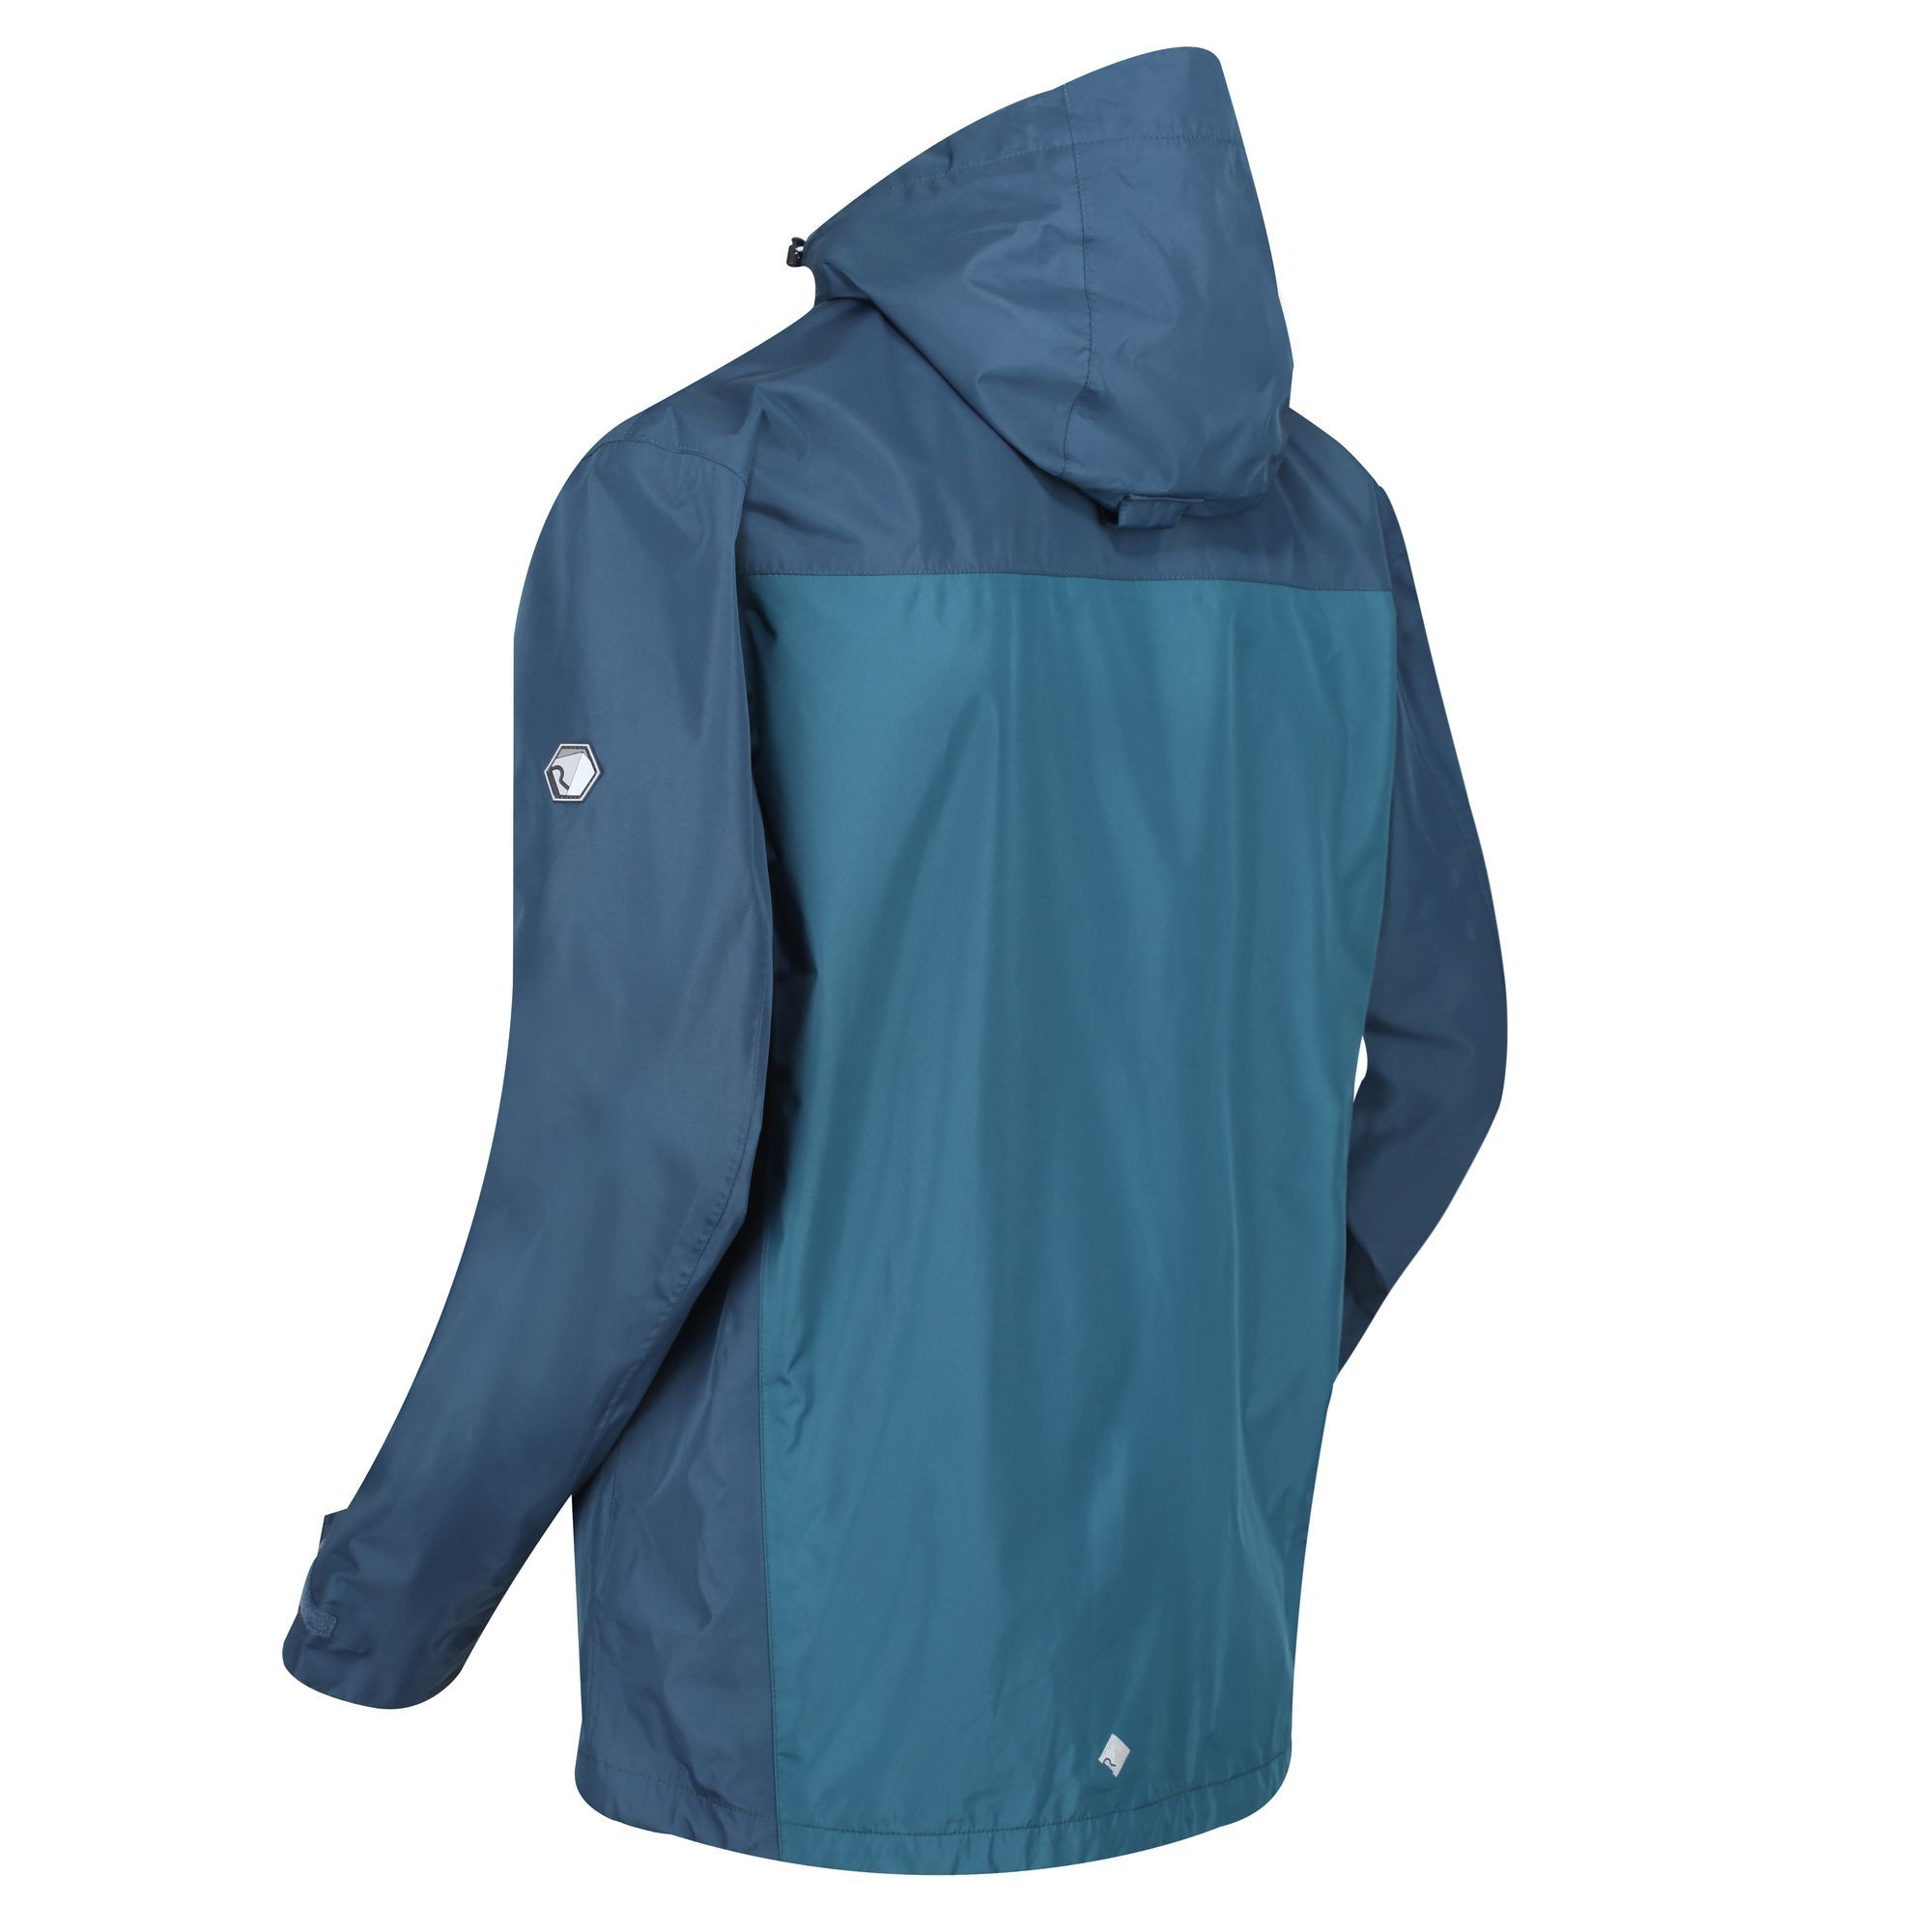 Mens-Regatta-Lightweight-Waterproof-Windproof-Jacket-Clearance-RRP-70-00 thumbnail 26